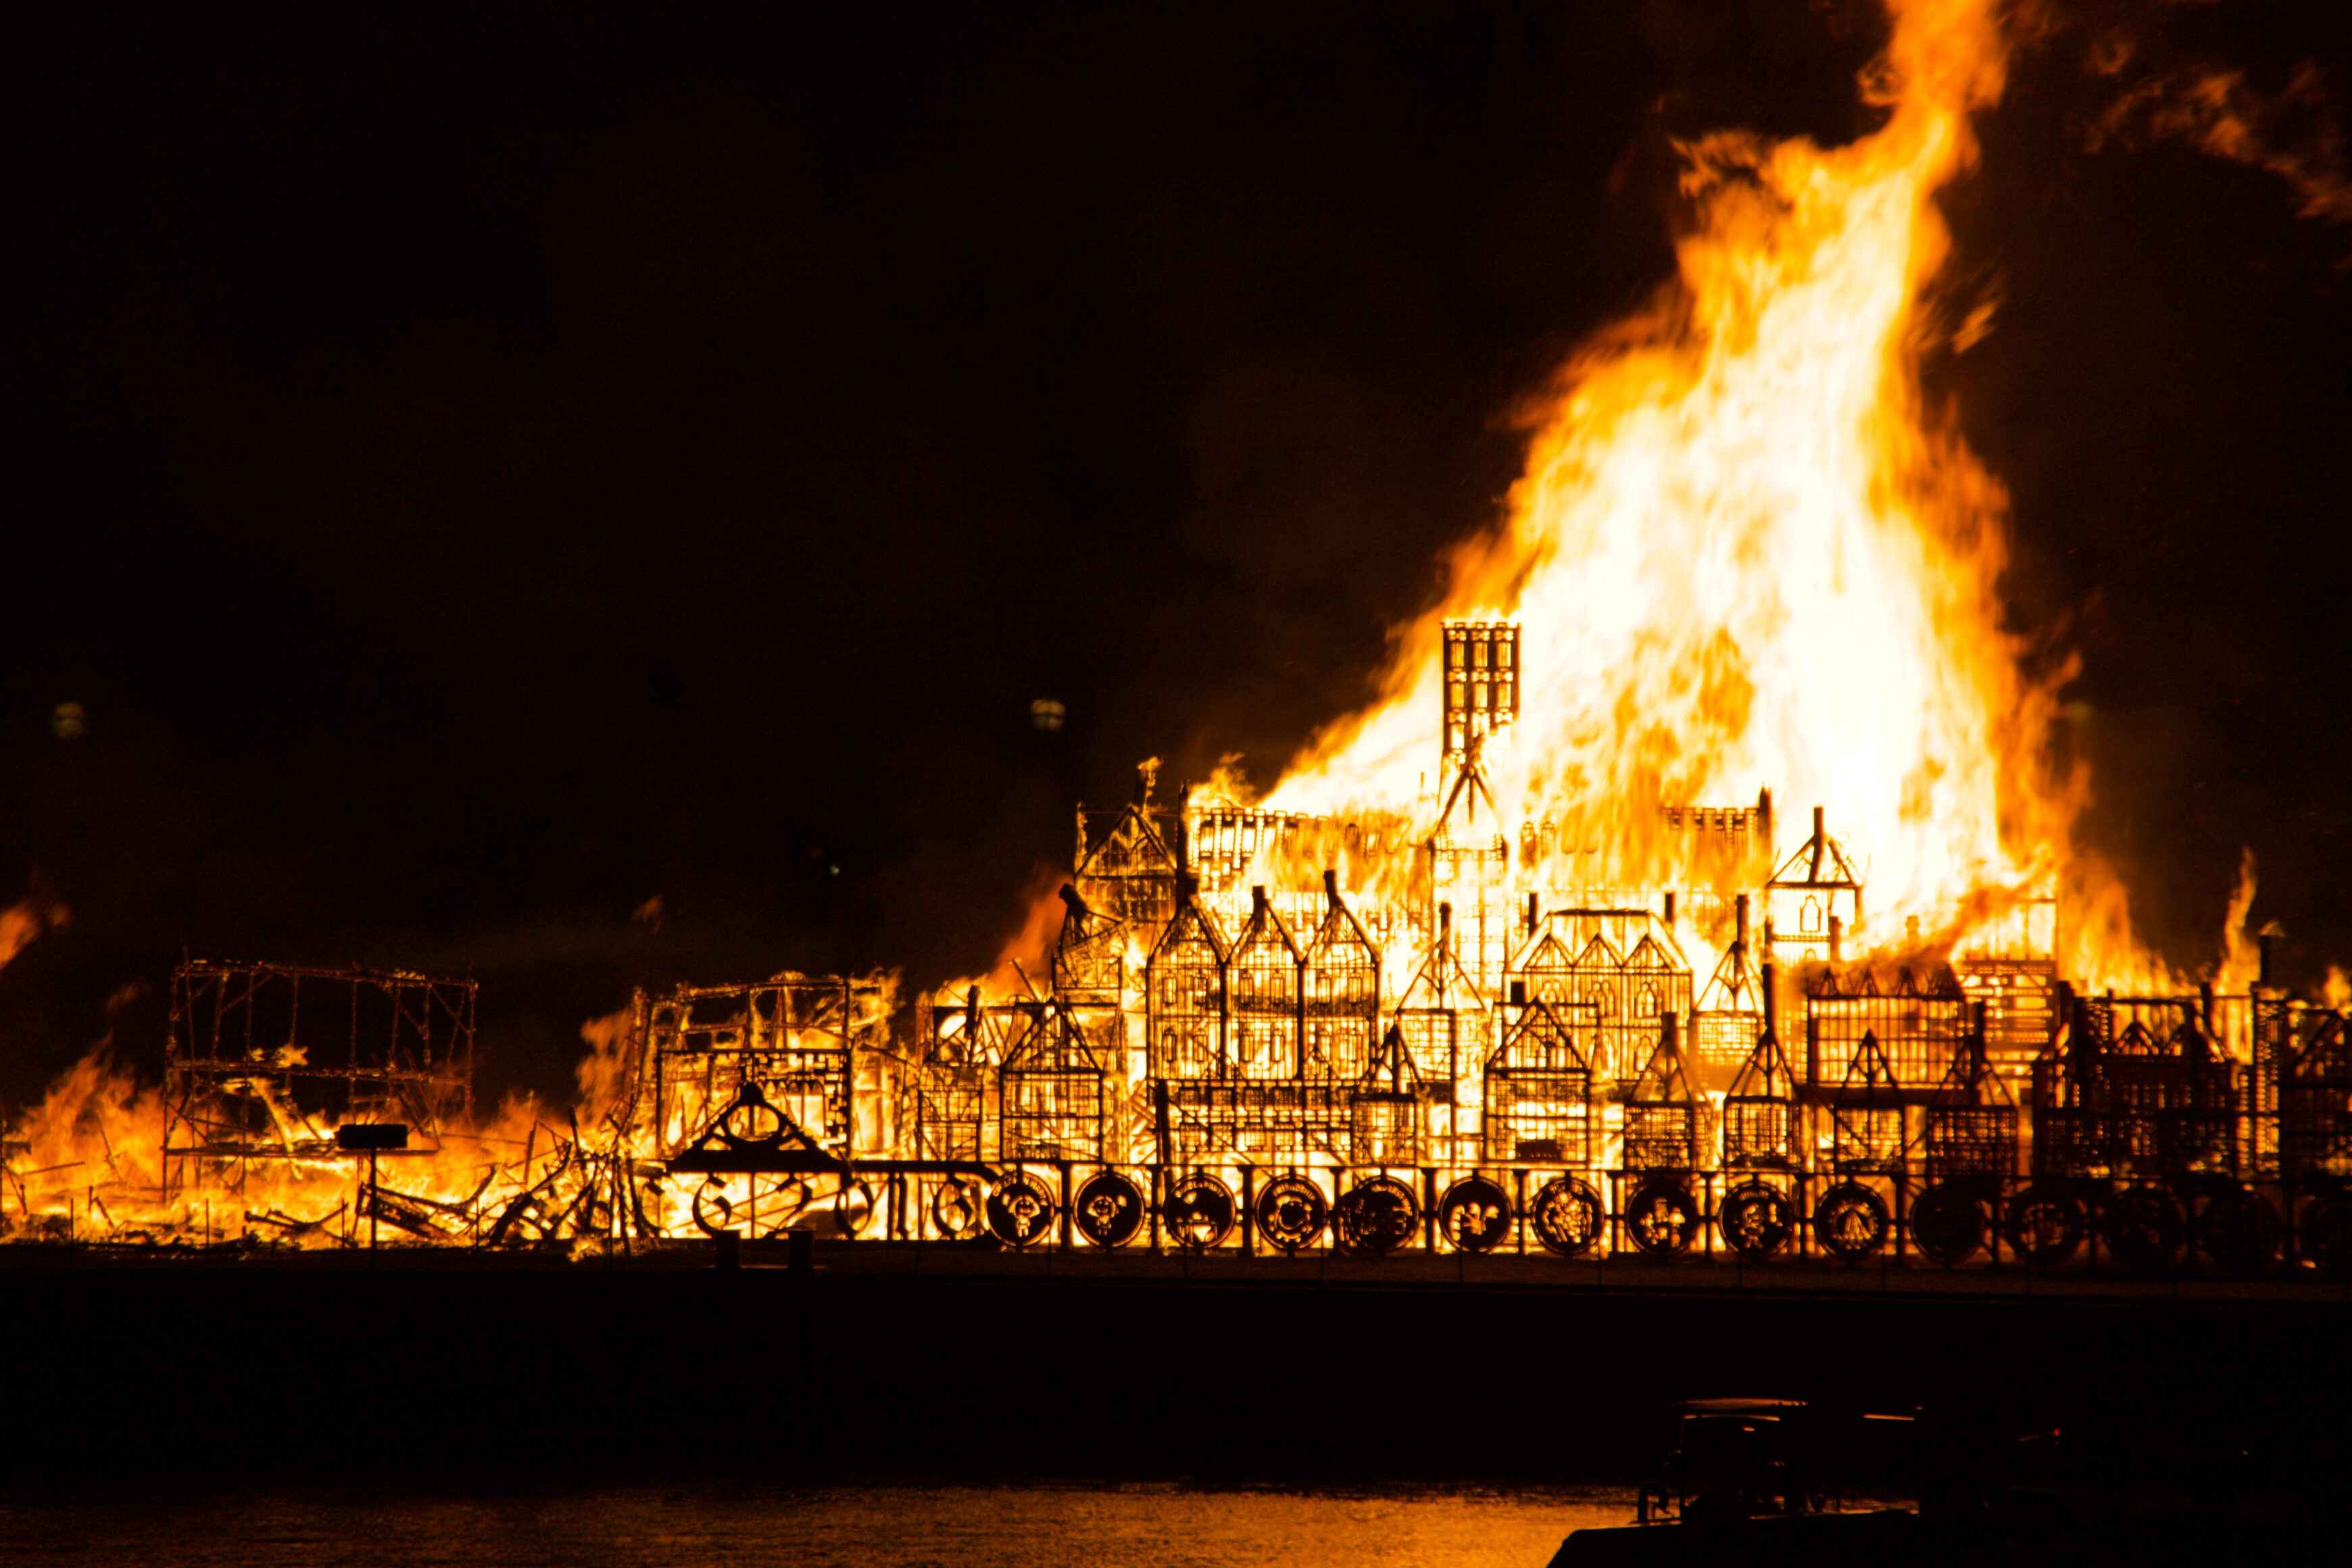 With advancements in fire safety and technology, while not impossible, it is almost certain that the Great Fire of London won't happen again.